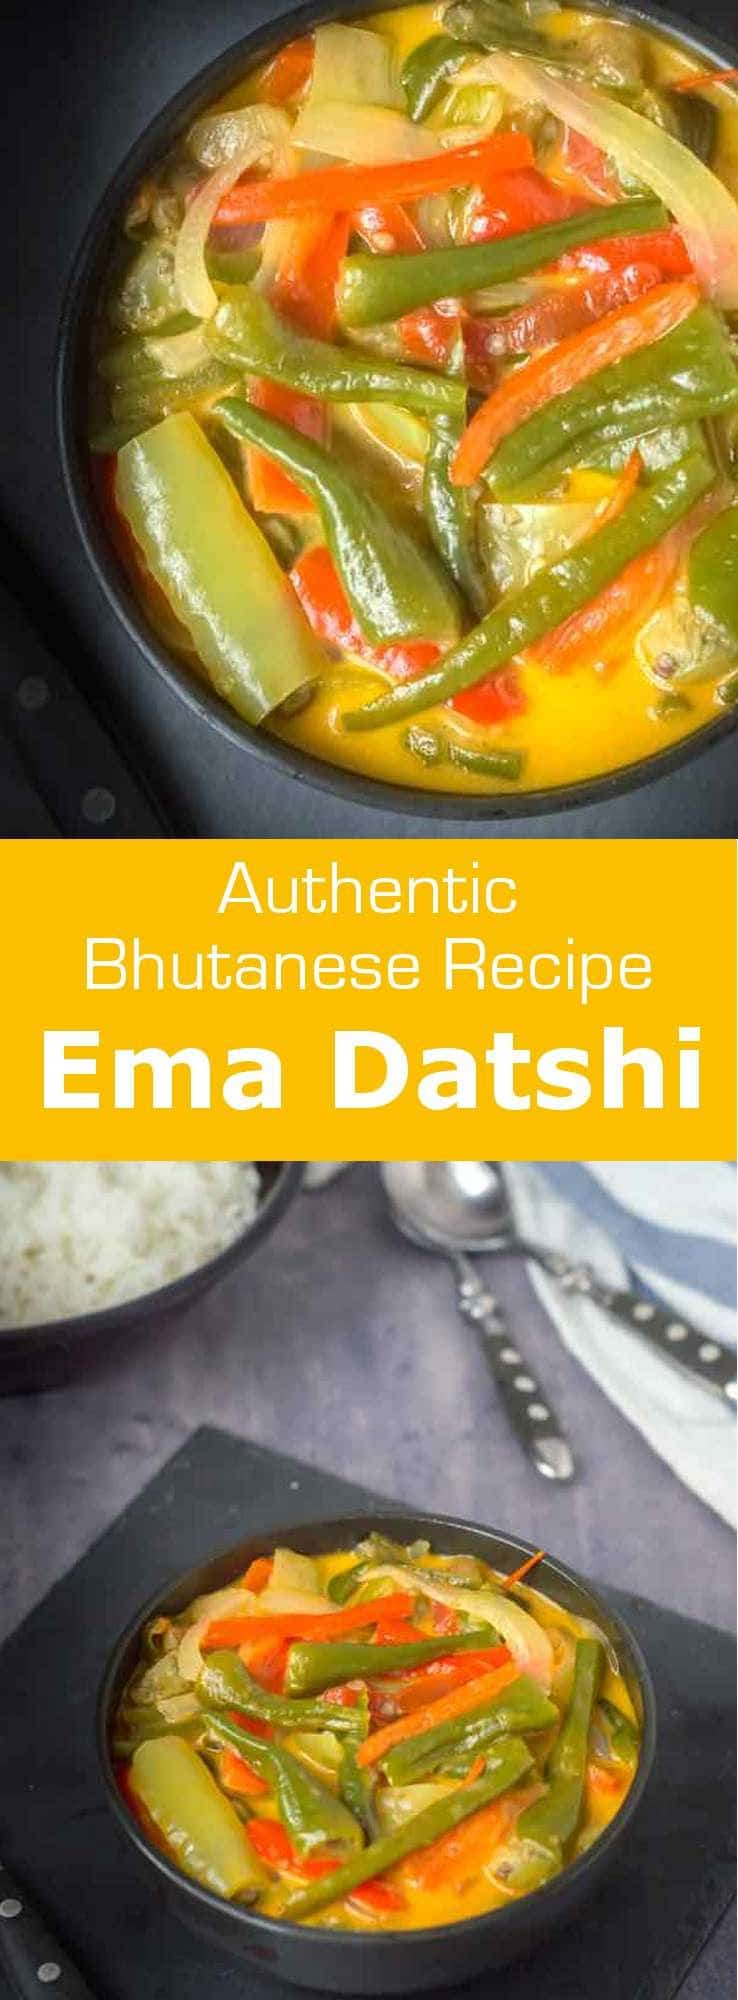 Ema Datshi, the national dish of Bhutan is a deliciously spicy stew made of chili peppers, onions and locally produced yak cheese. #Bhutan #Bhutanese #AsianCuisine #Soup #Vegetarian #WorldCuisine #196flavors